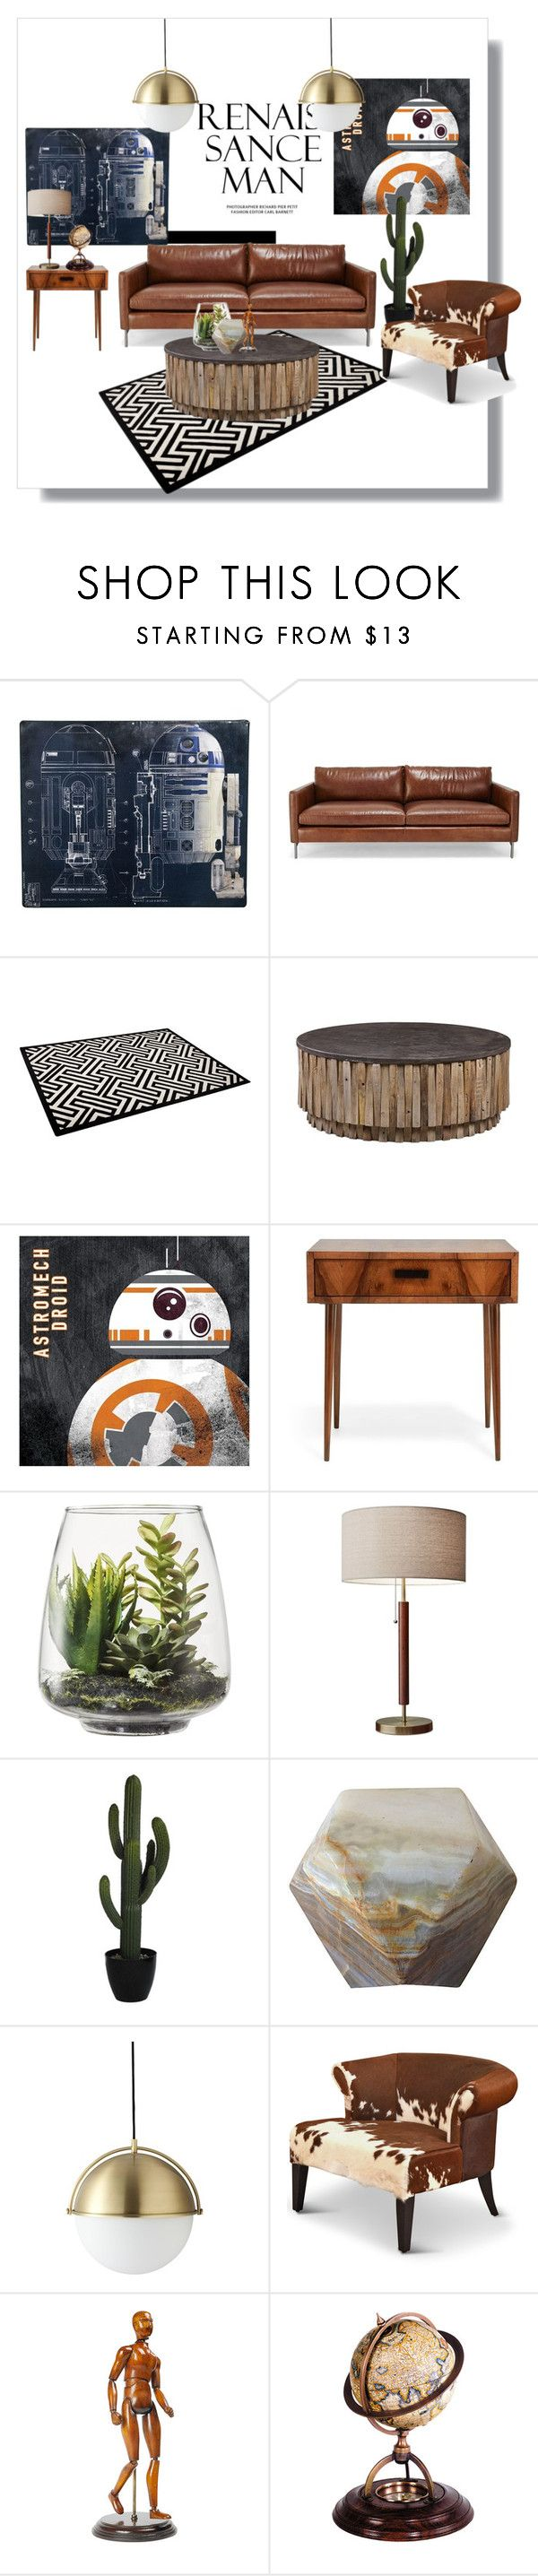 Threshold home decor shop for threshold home decor on polyvore -  The Gentleman S Quarter By As0f1am Liked On Polyvore Featuring Interior Interiors The Gentlemaninterior Decoratinginterior